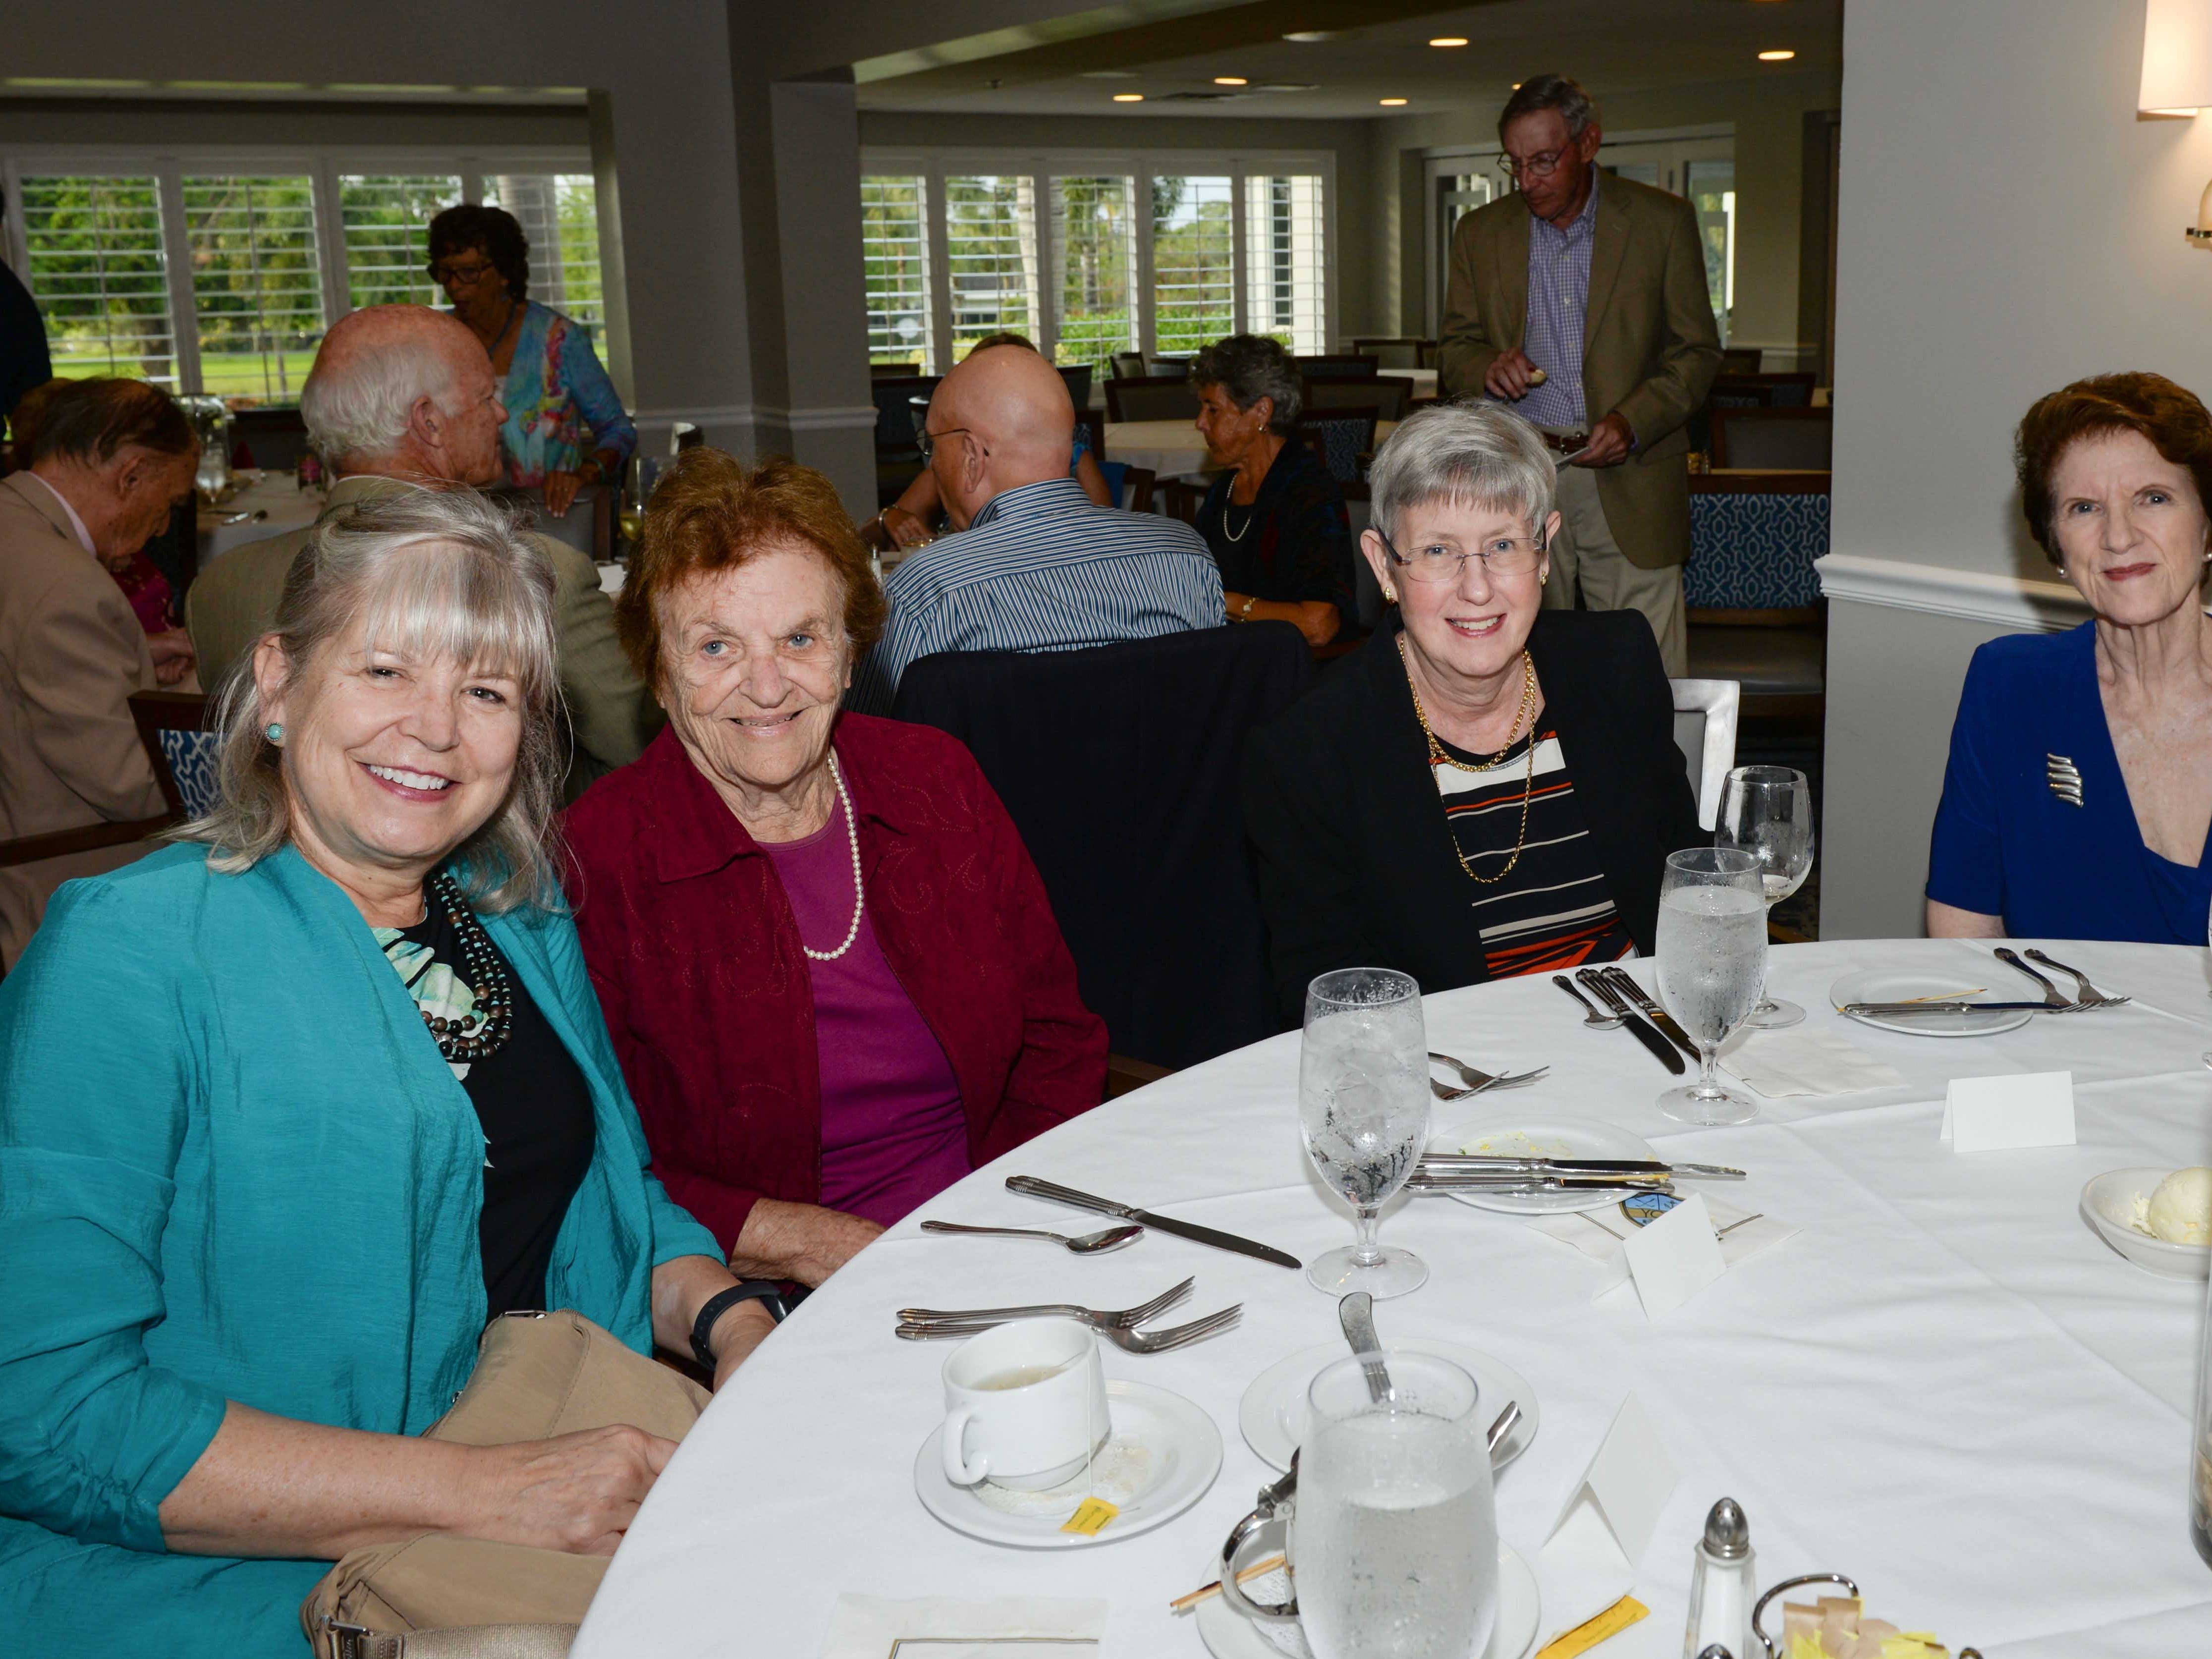 Lora Schwab, left, Diana Doyle, Sue Riddell and Jeanne Hudock attend the Stuart Friends of the Atlantic Classical Orchestra's Meet the Artist Dinner at the Stuart Yacht & Country Club.